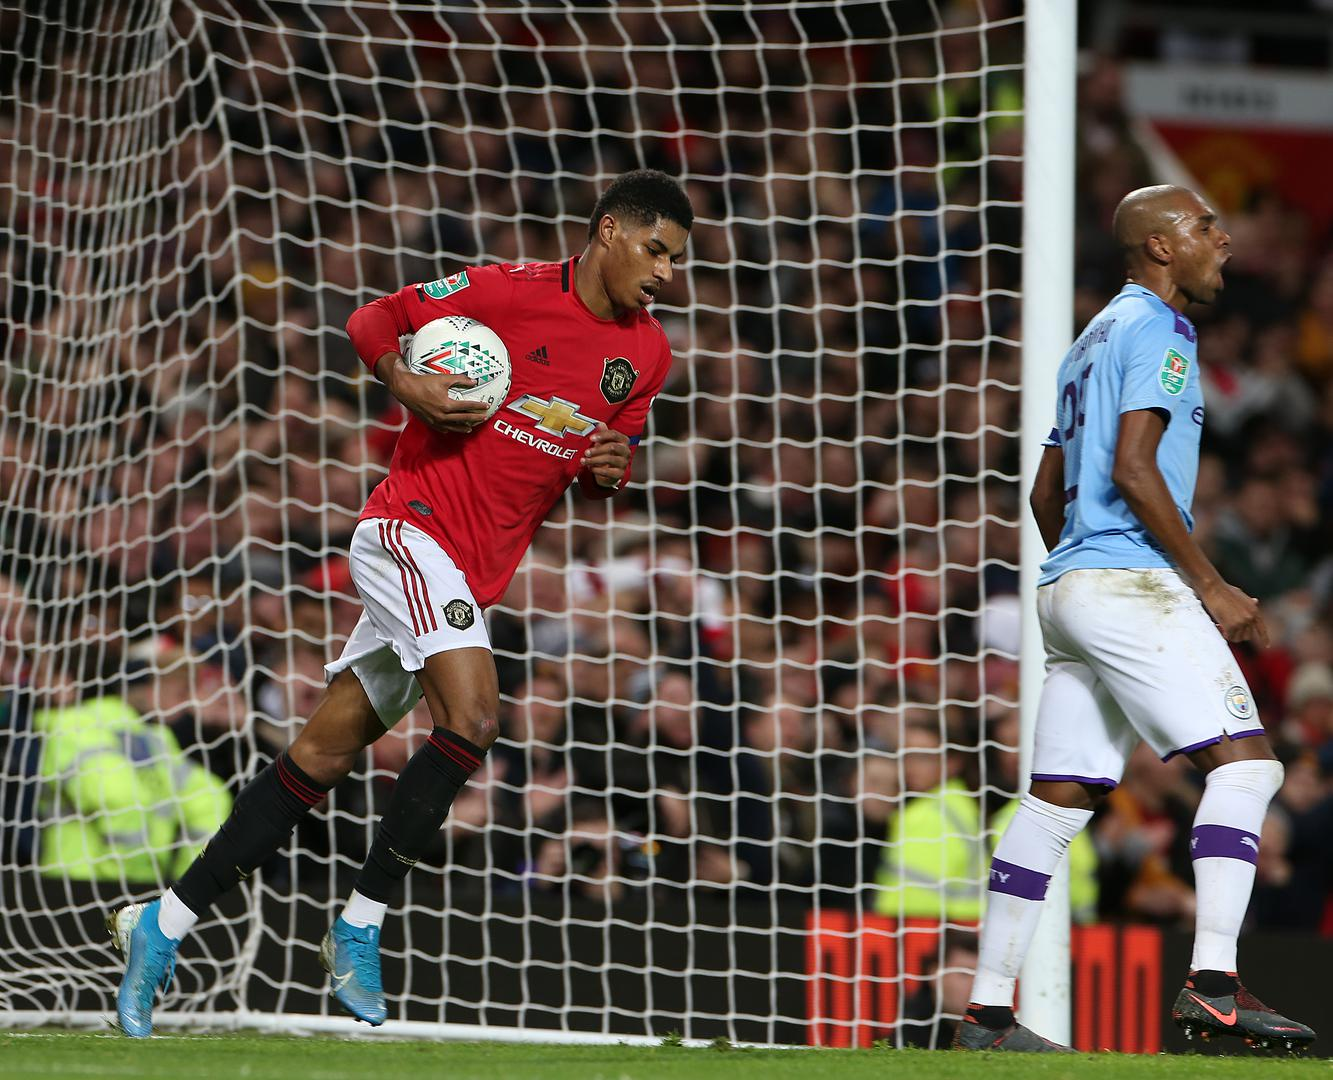 Marcus Rashford picks the ball out of the net after scoring against Man City.